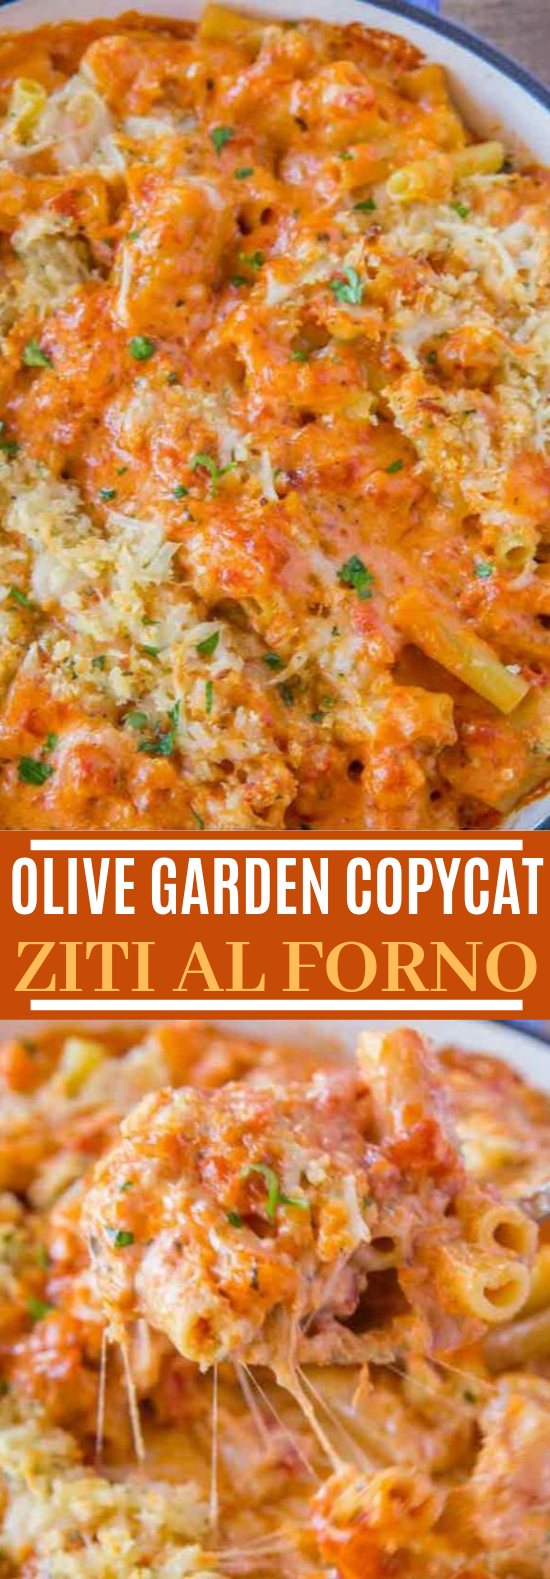 Olive Garden Five Cheese Ziti al Forno (Copycat) #dinner #pasta